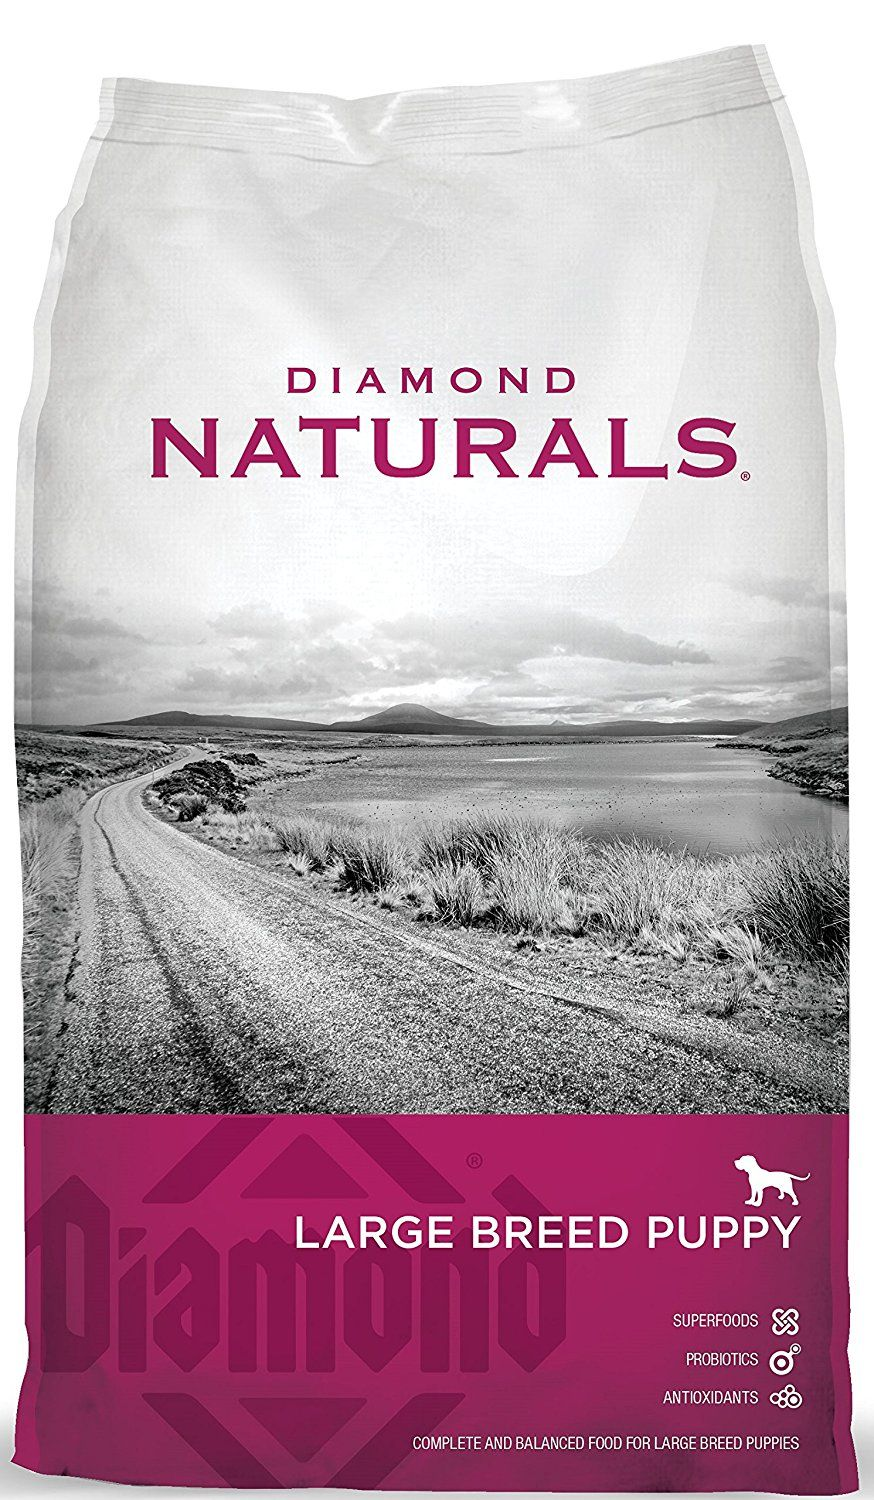 Diamond naturals dry food for puppy additional details